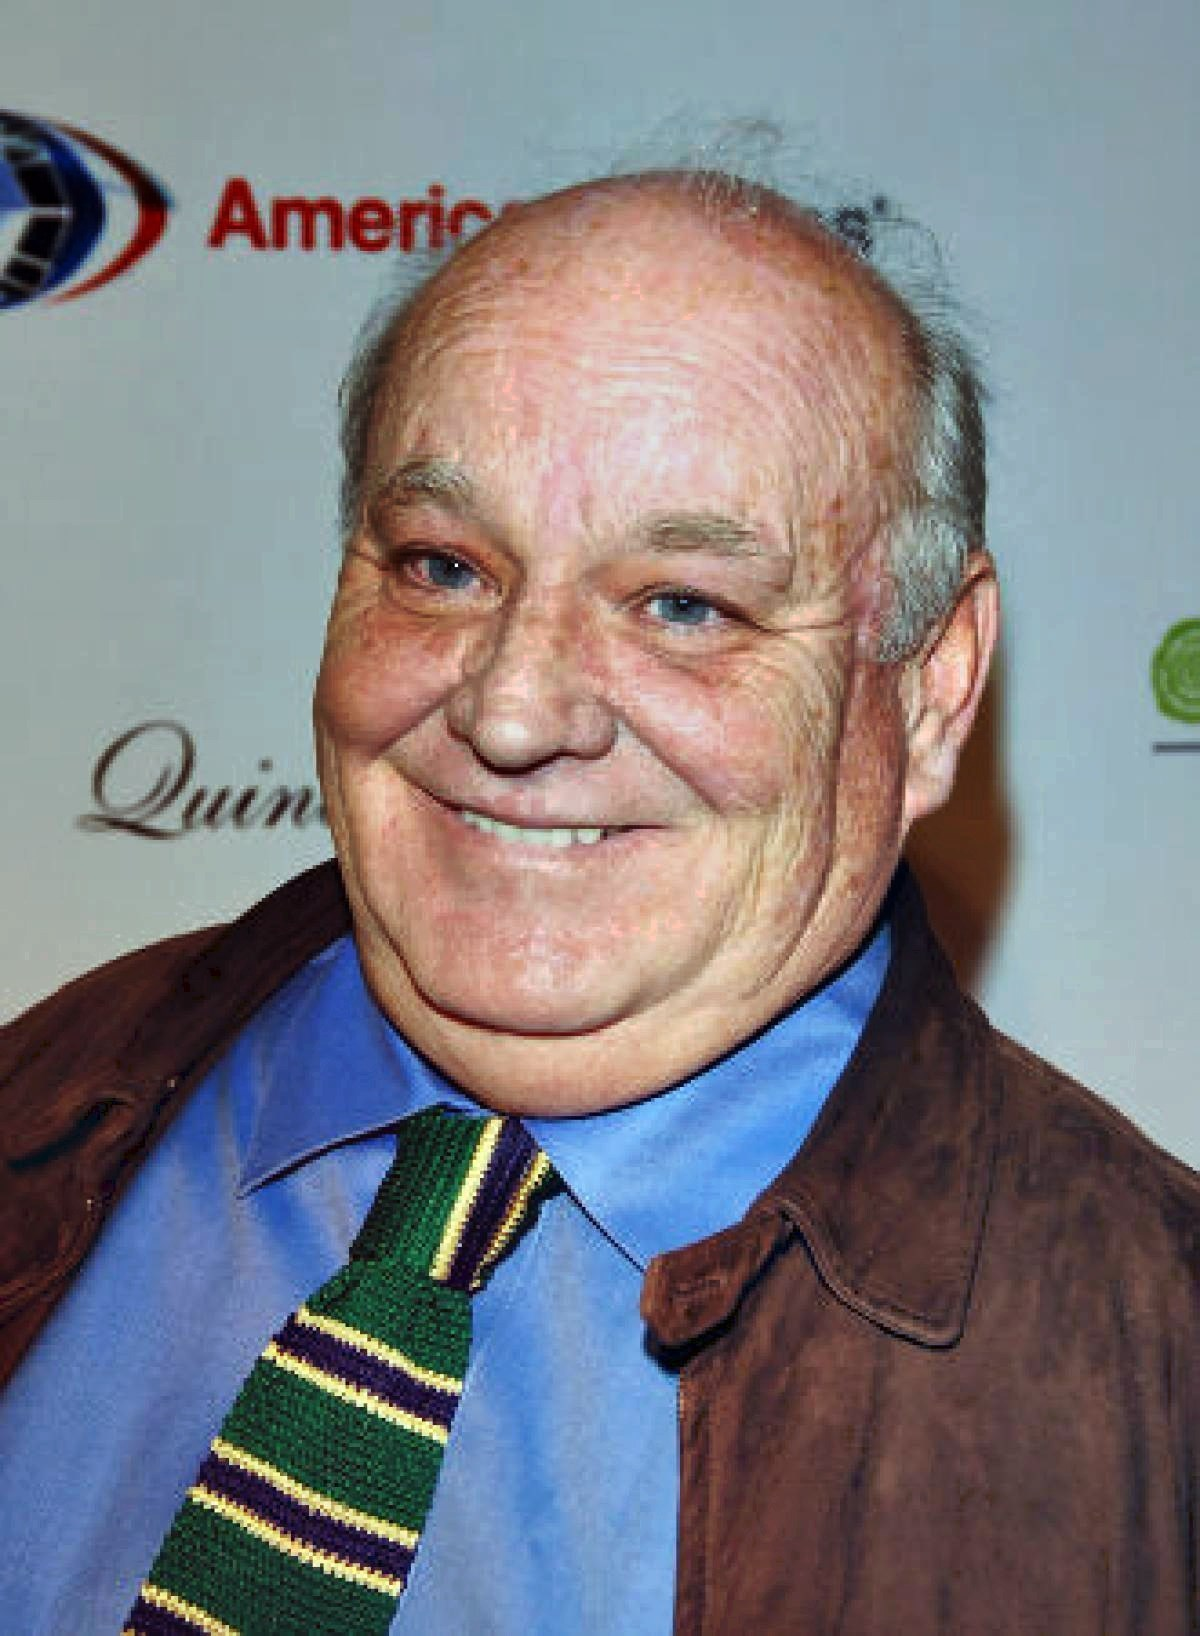 Brian Doyle Murray | Known people - famous people news and ... Brian Doyle Murray